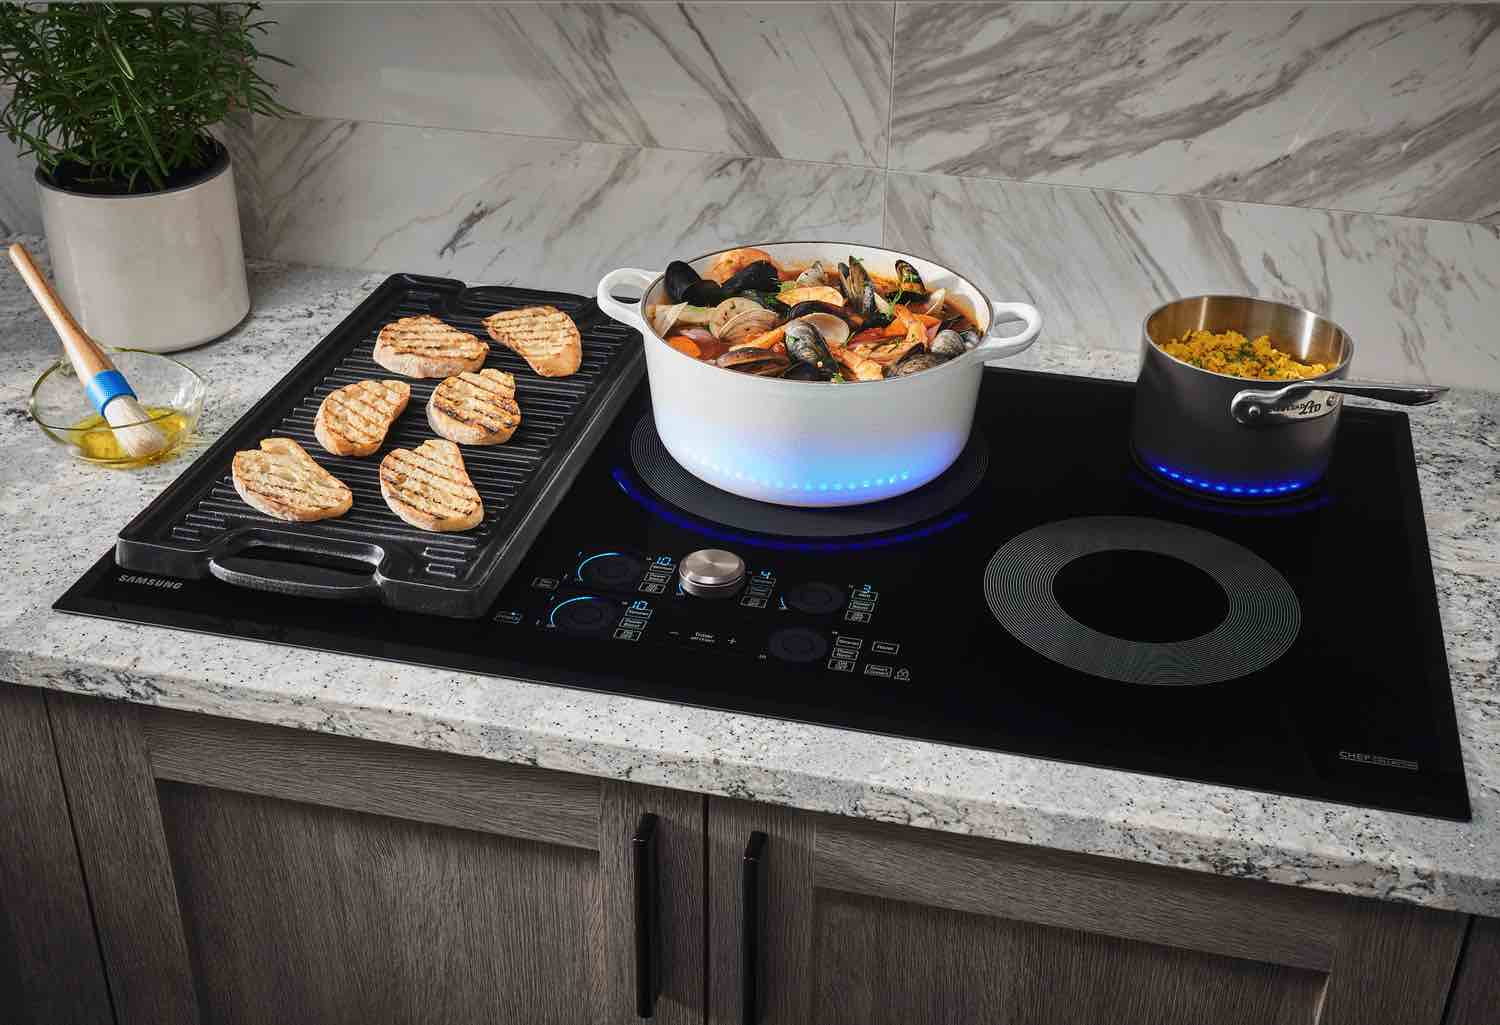 Best Induction Cooktop Top 5 Induction Cooktops Of 2021